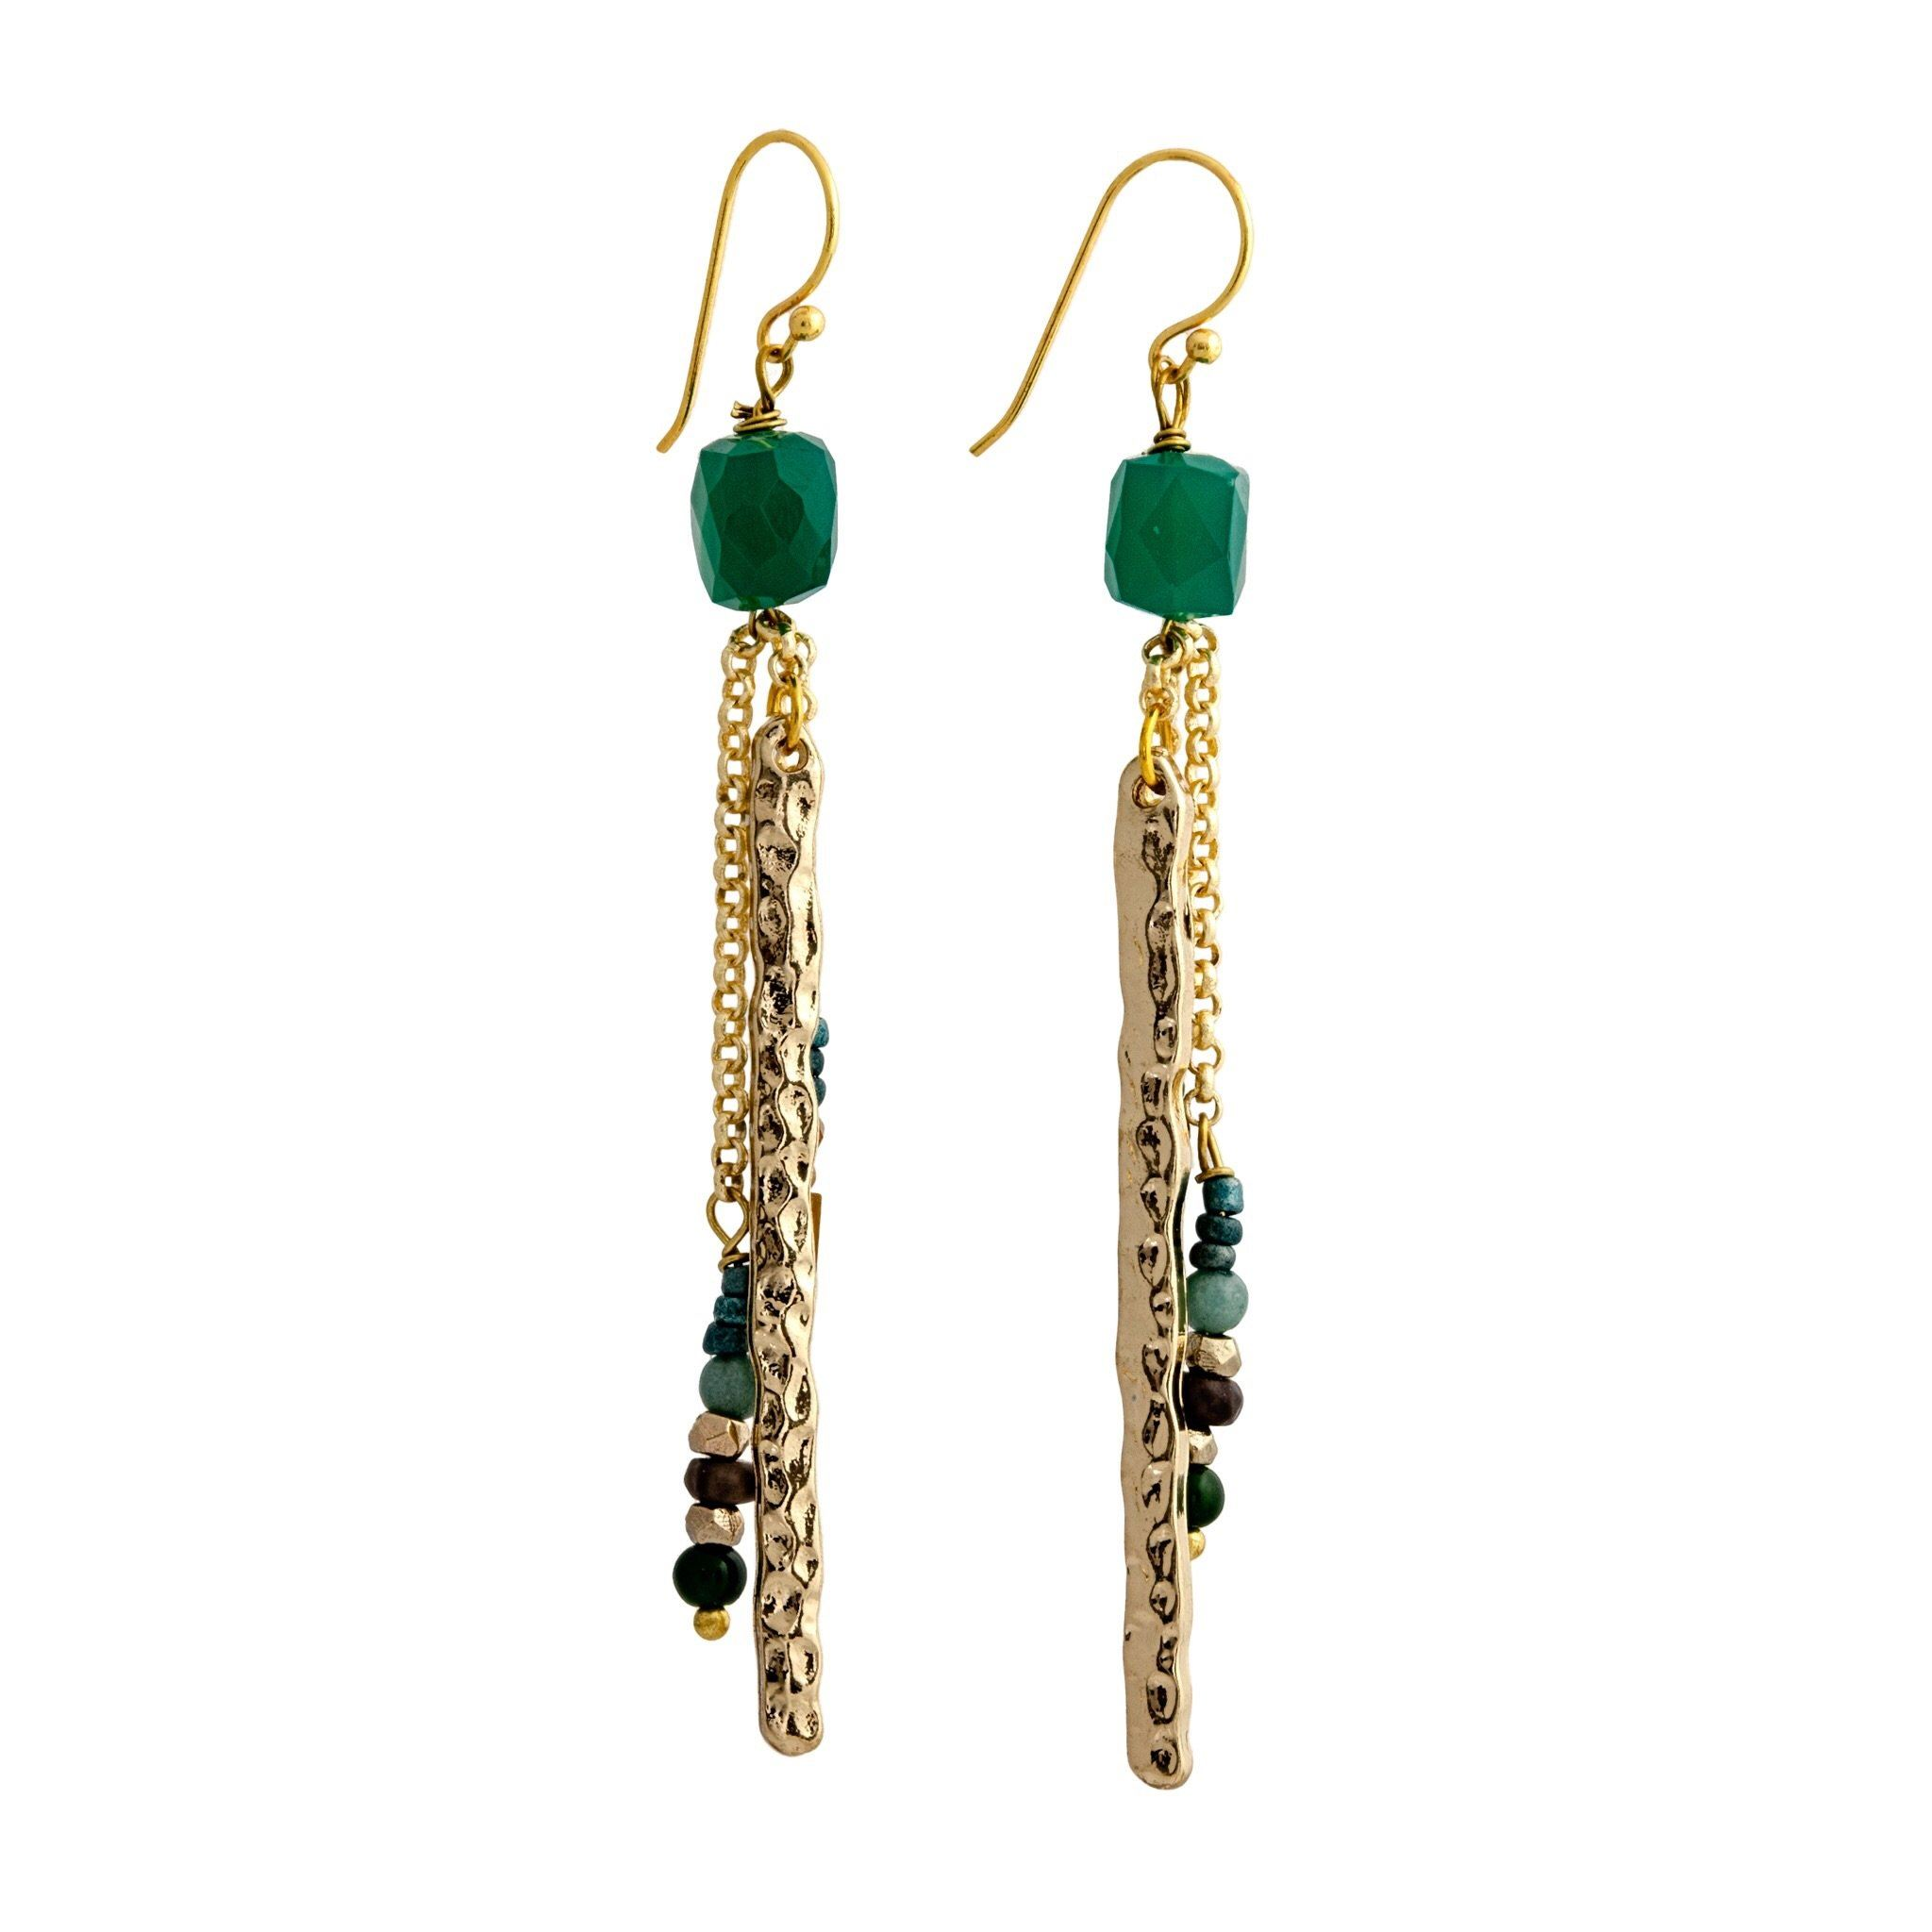 SIA green onyx earrings